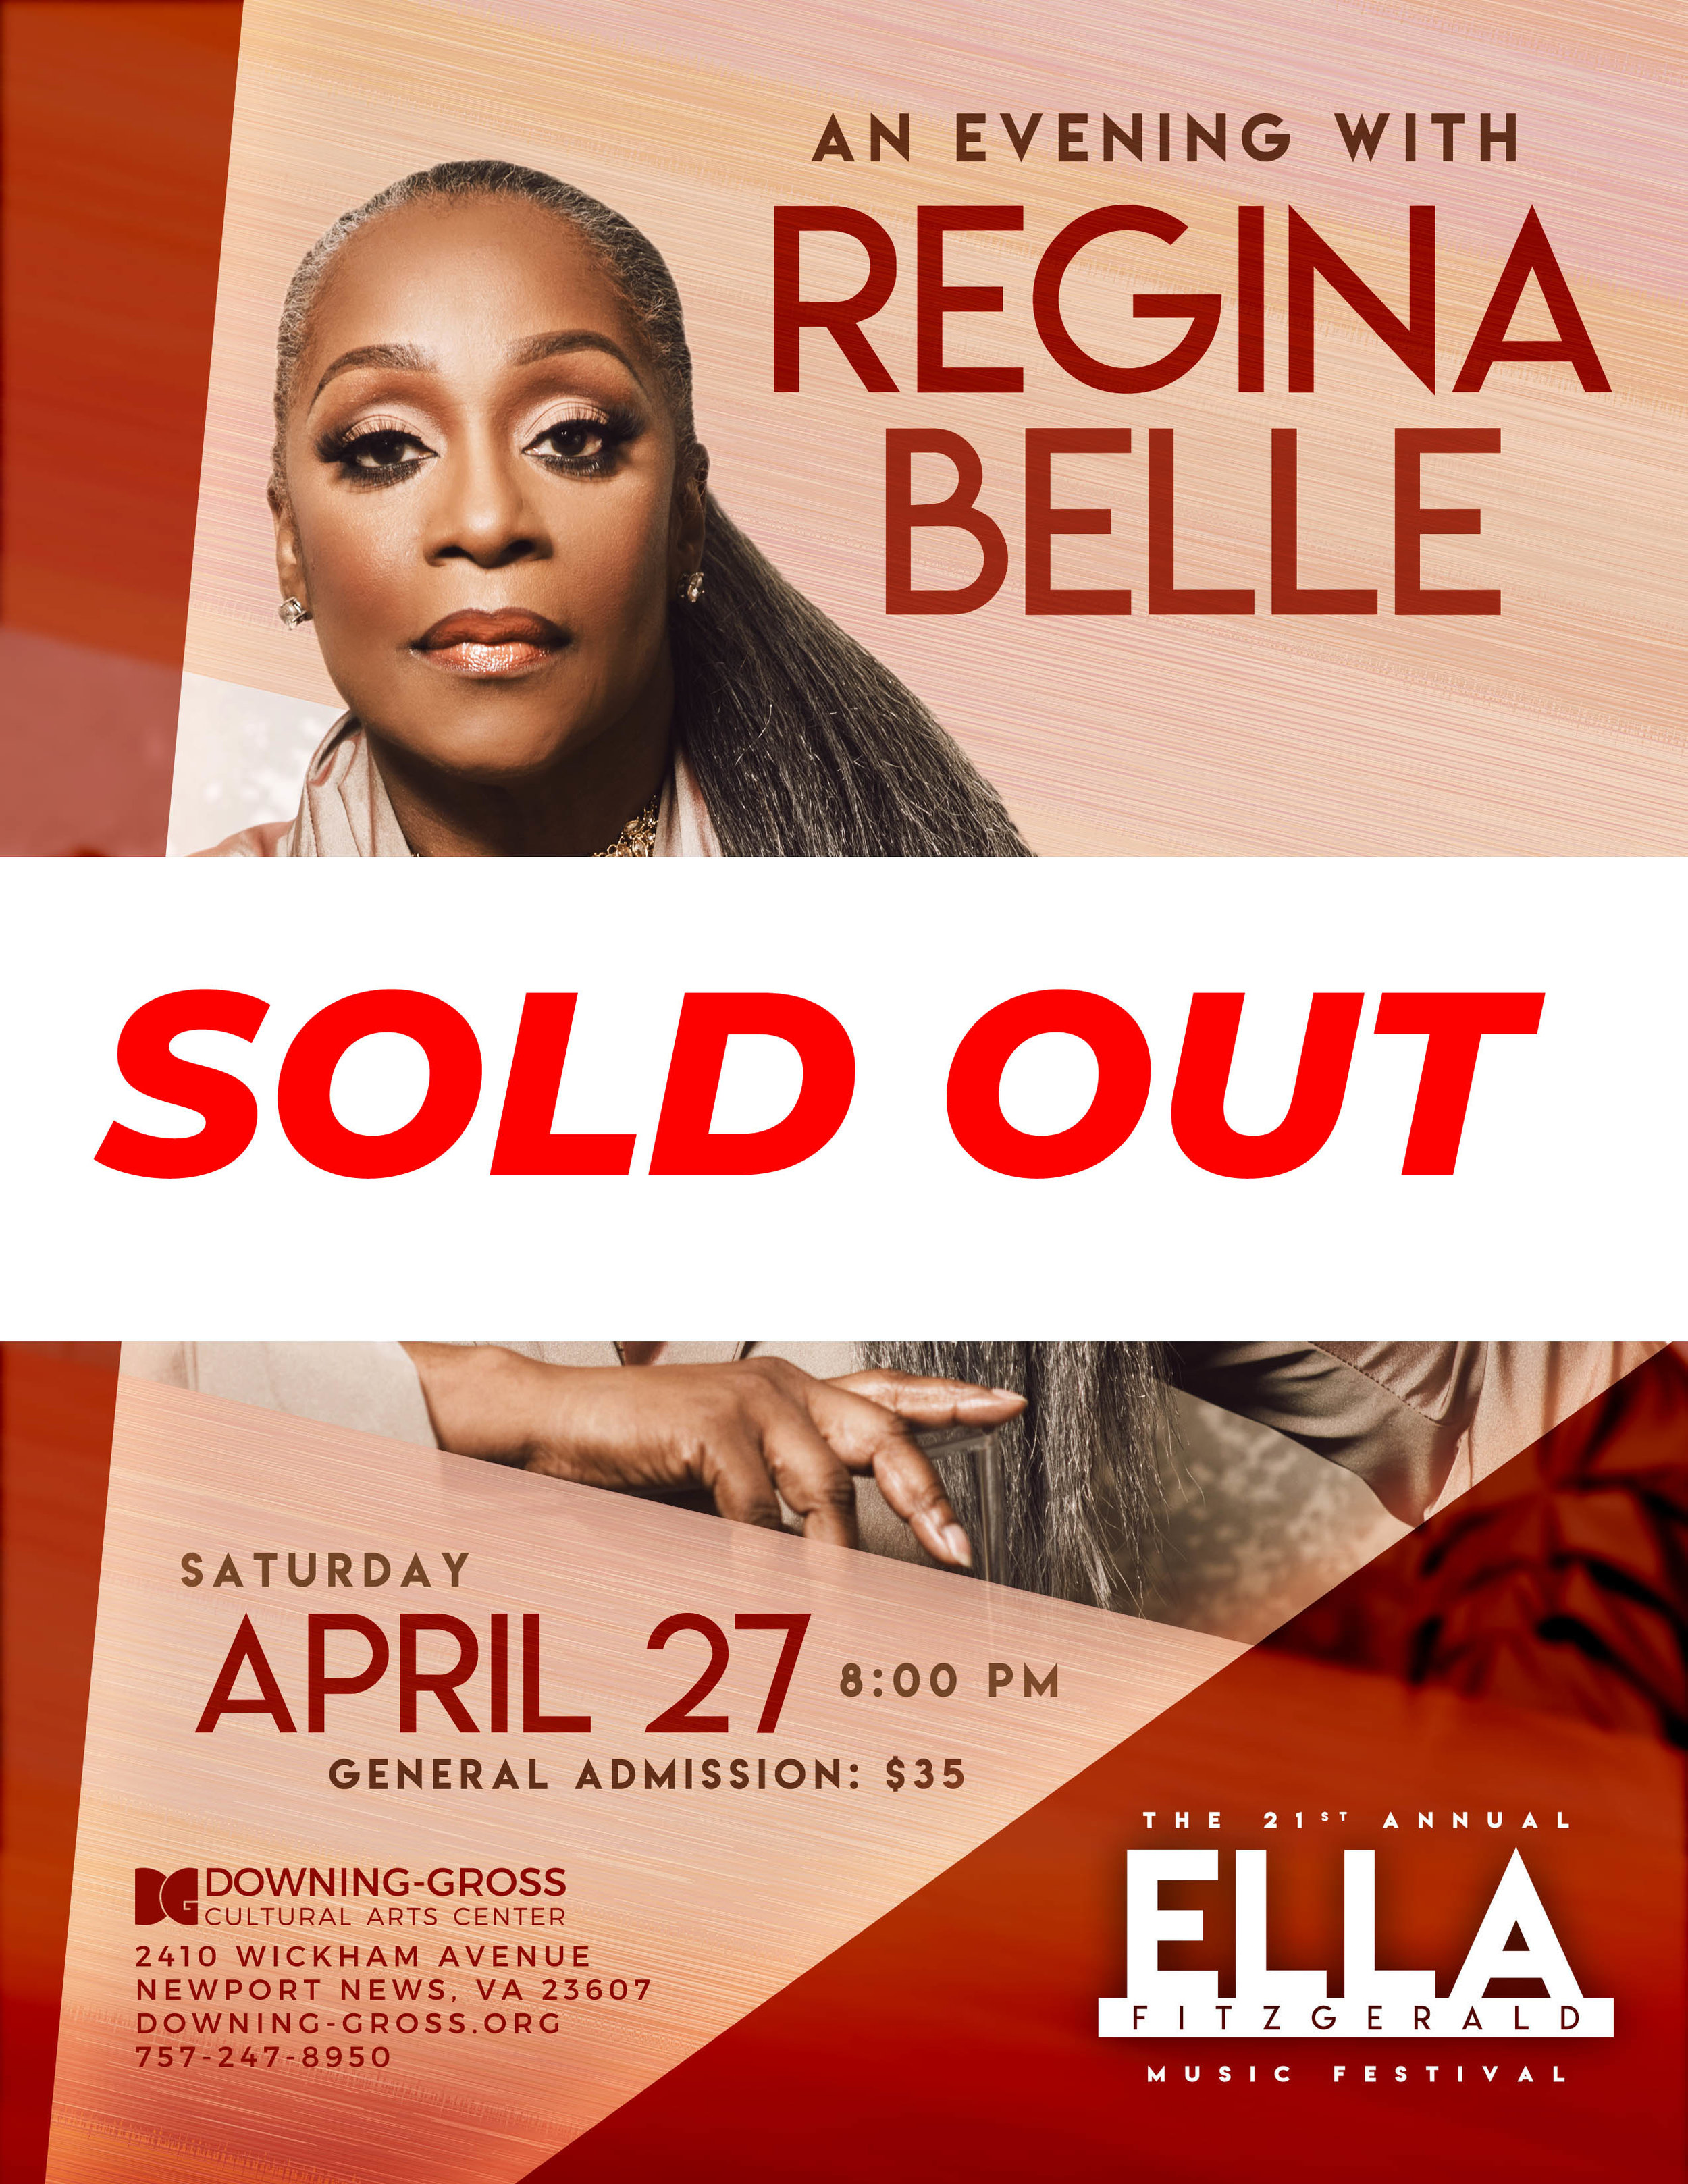 SOLD OUT Regina Belle Flyer.jpg